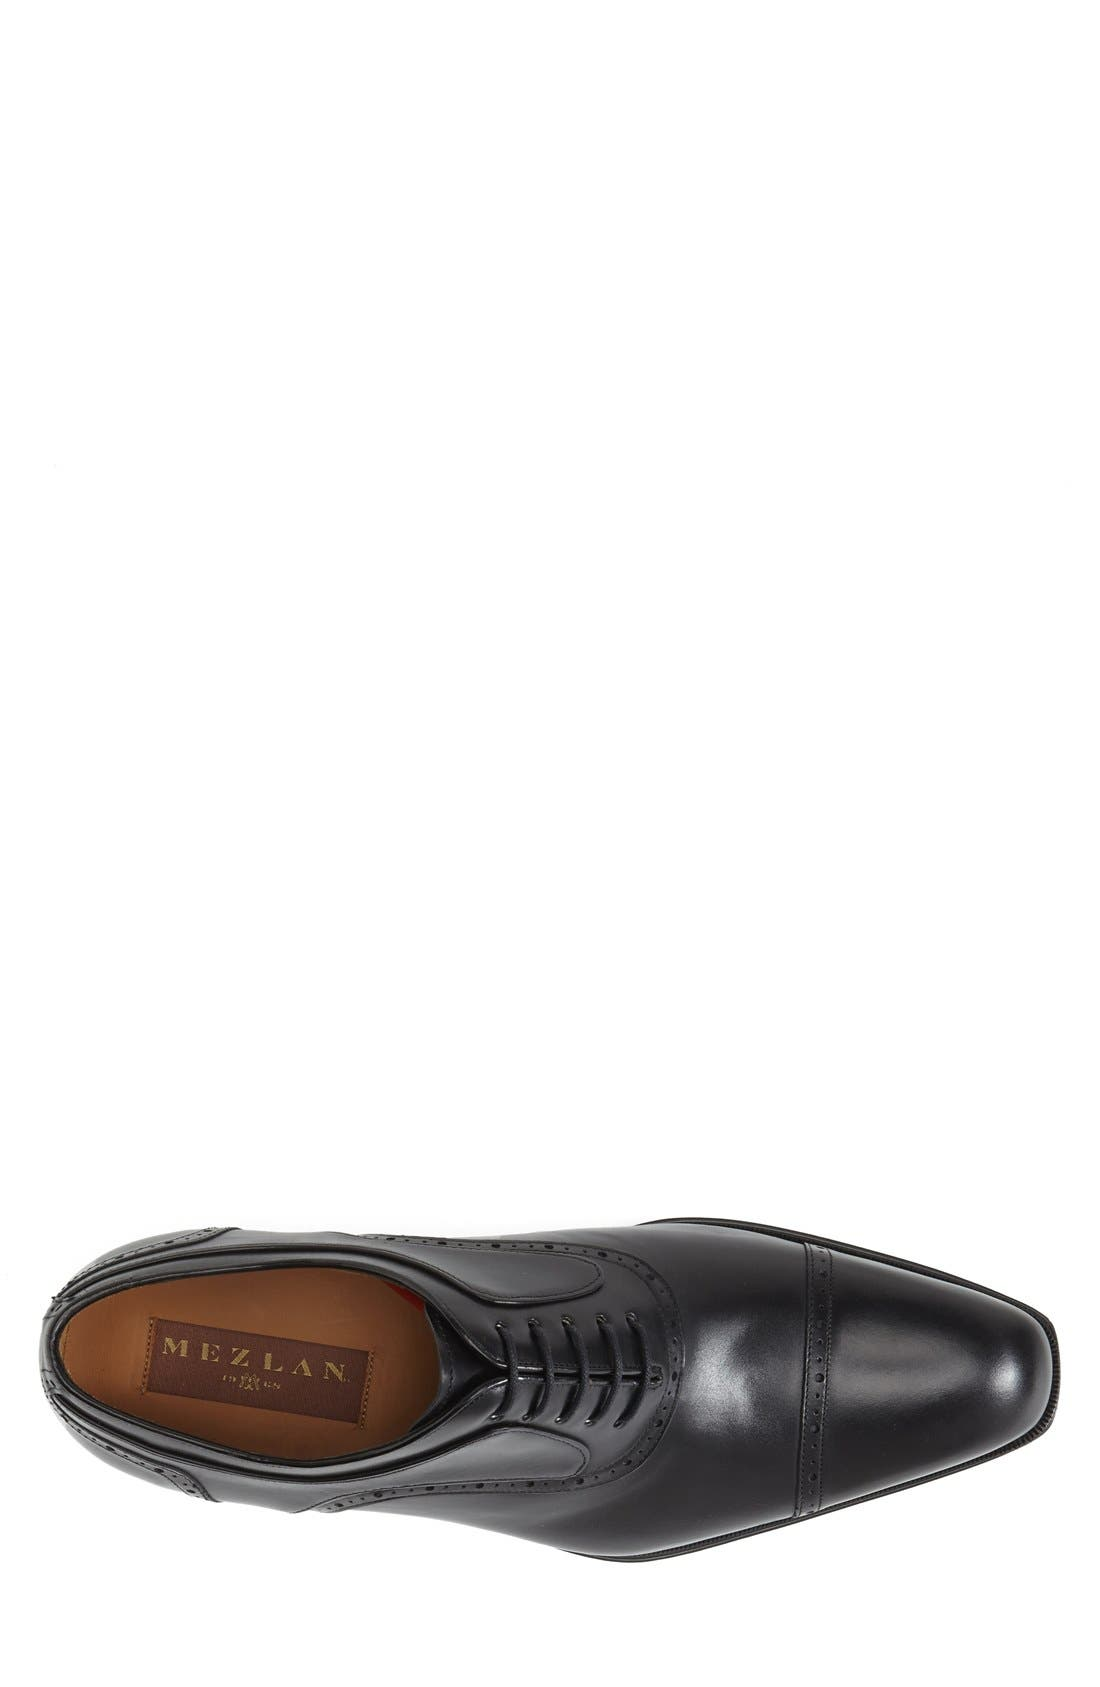 MEZLAN, 'March' Cap Toe Oxford, Alternate thumbnail 3, color, 001